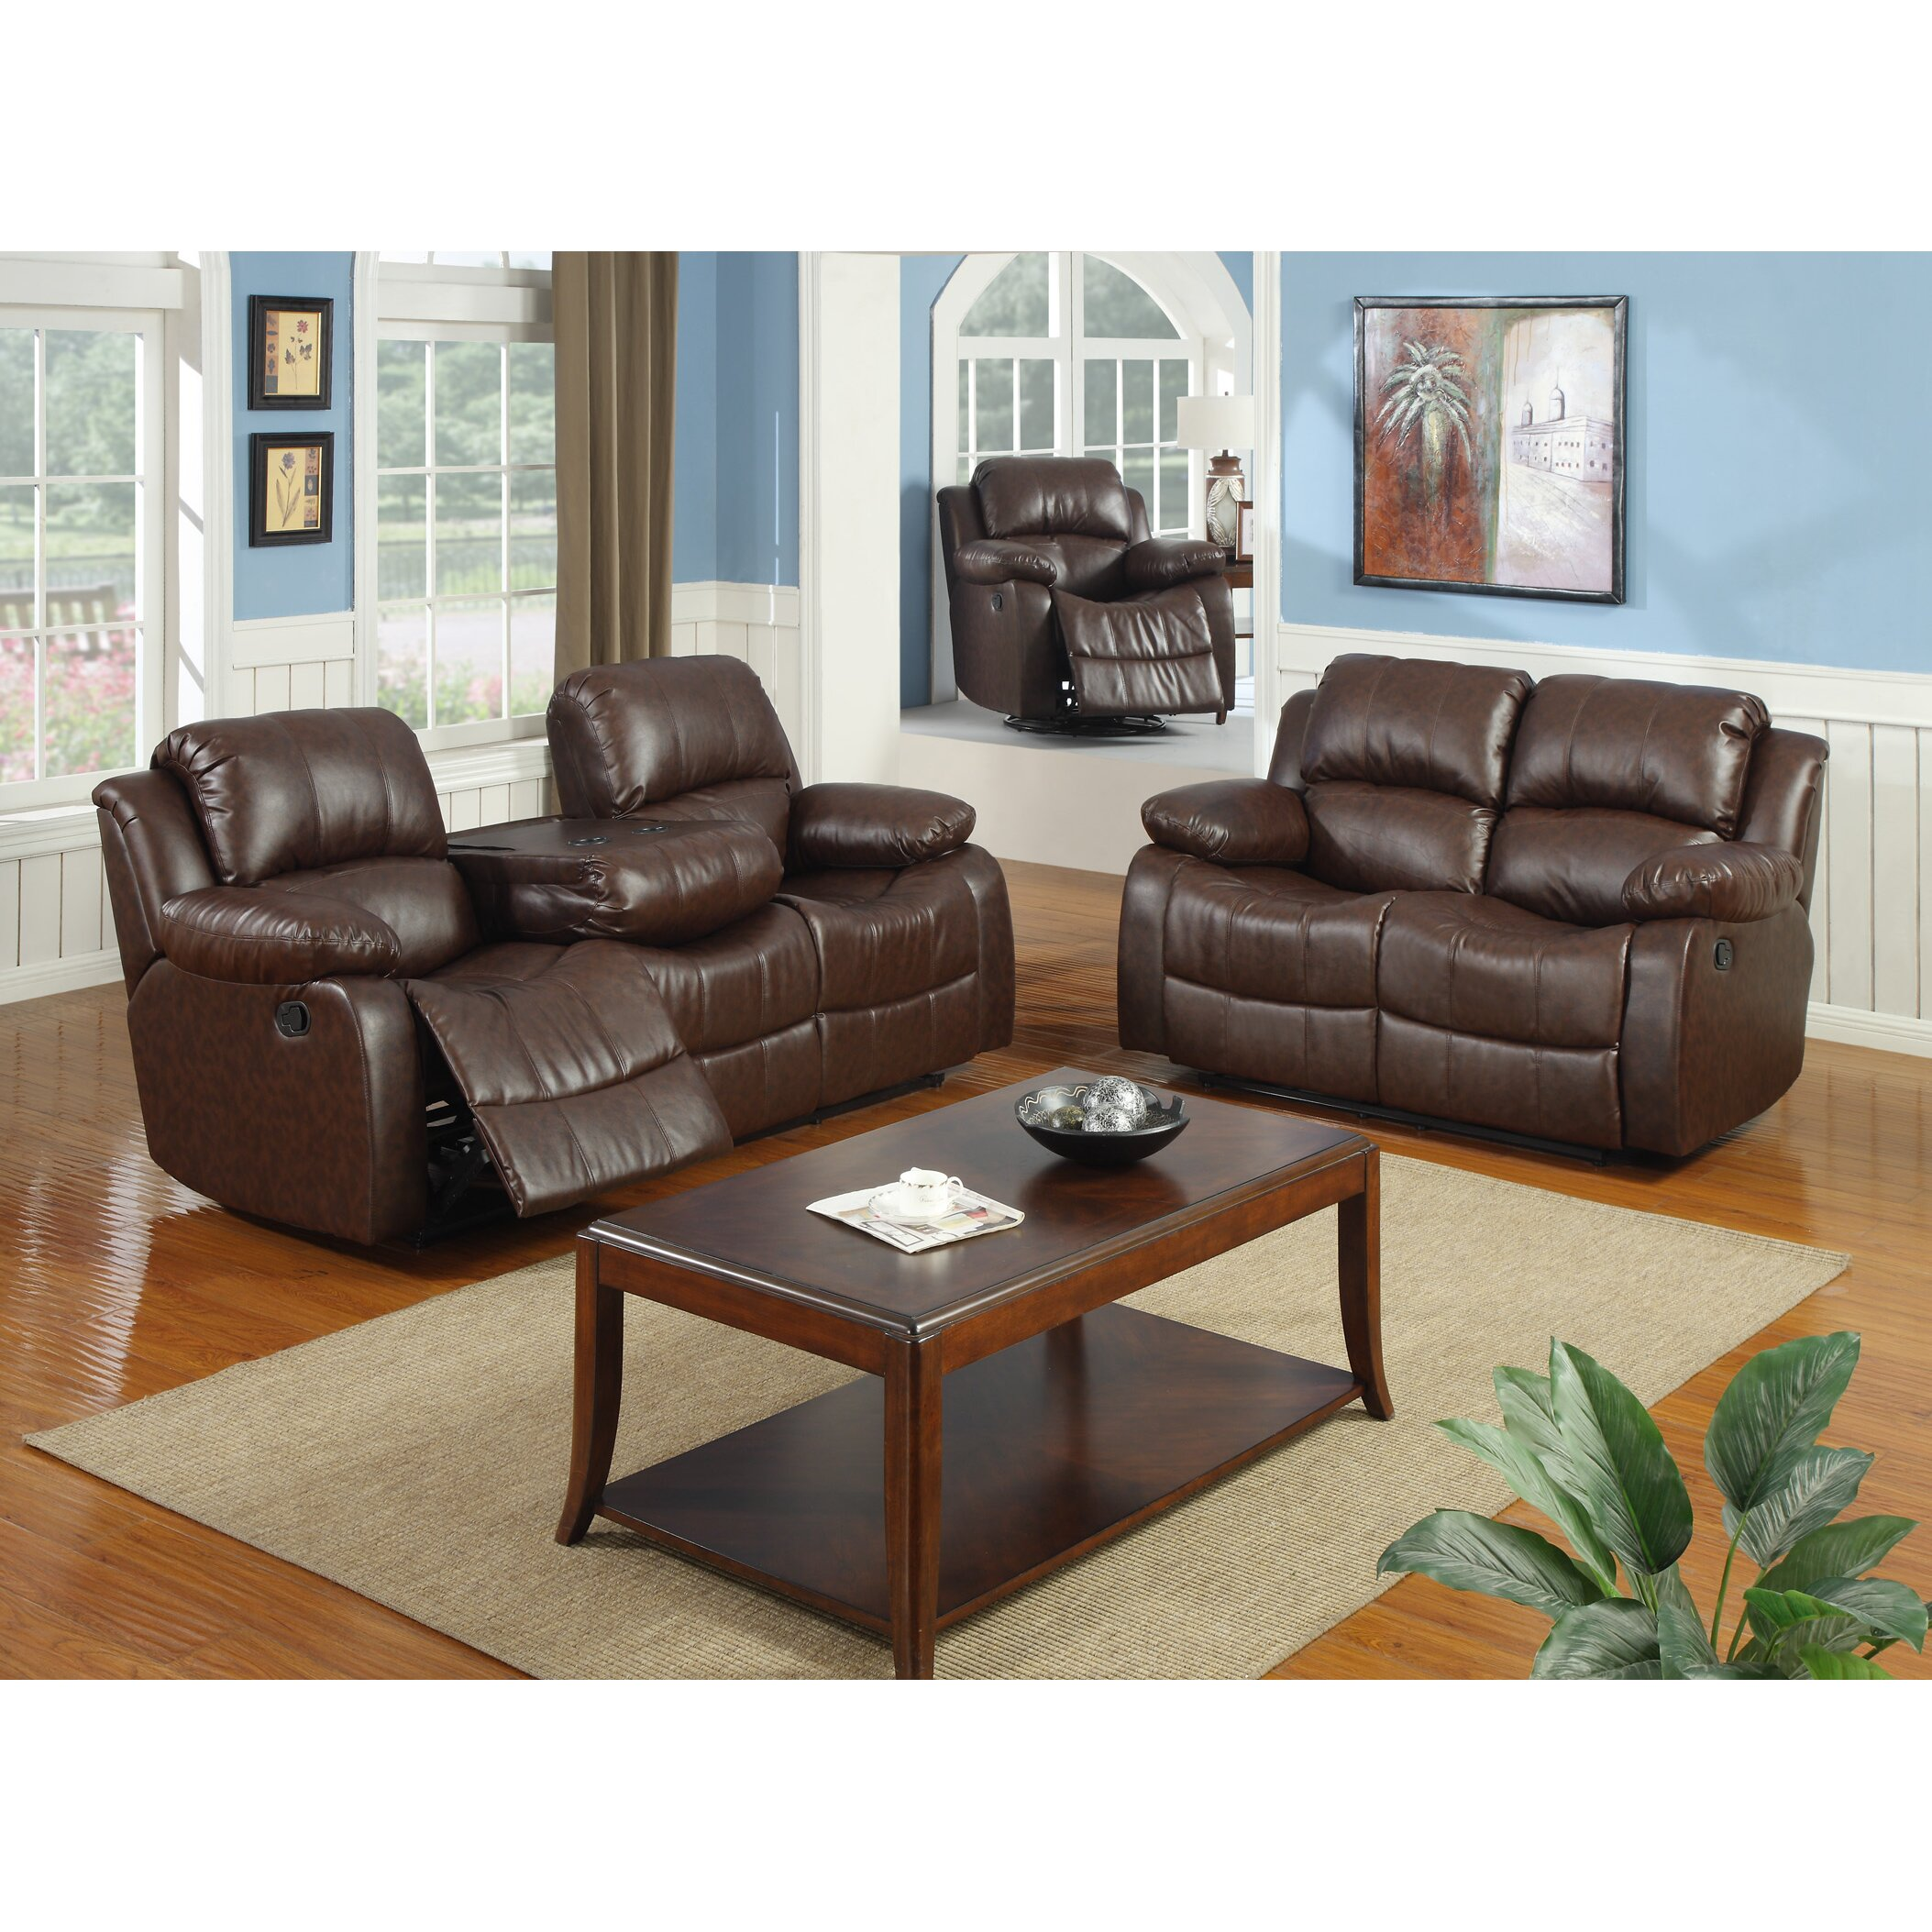 Best quality furniture bonded leather 3 piece recliner for Leather living room furniture